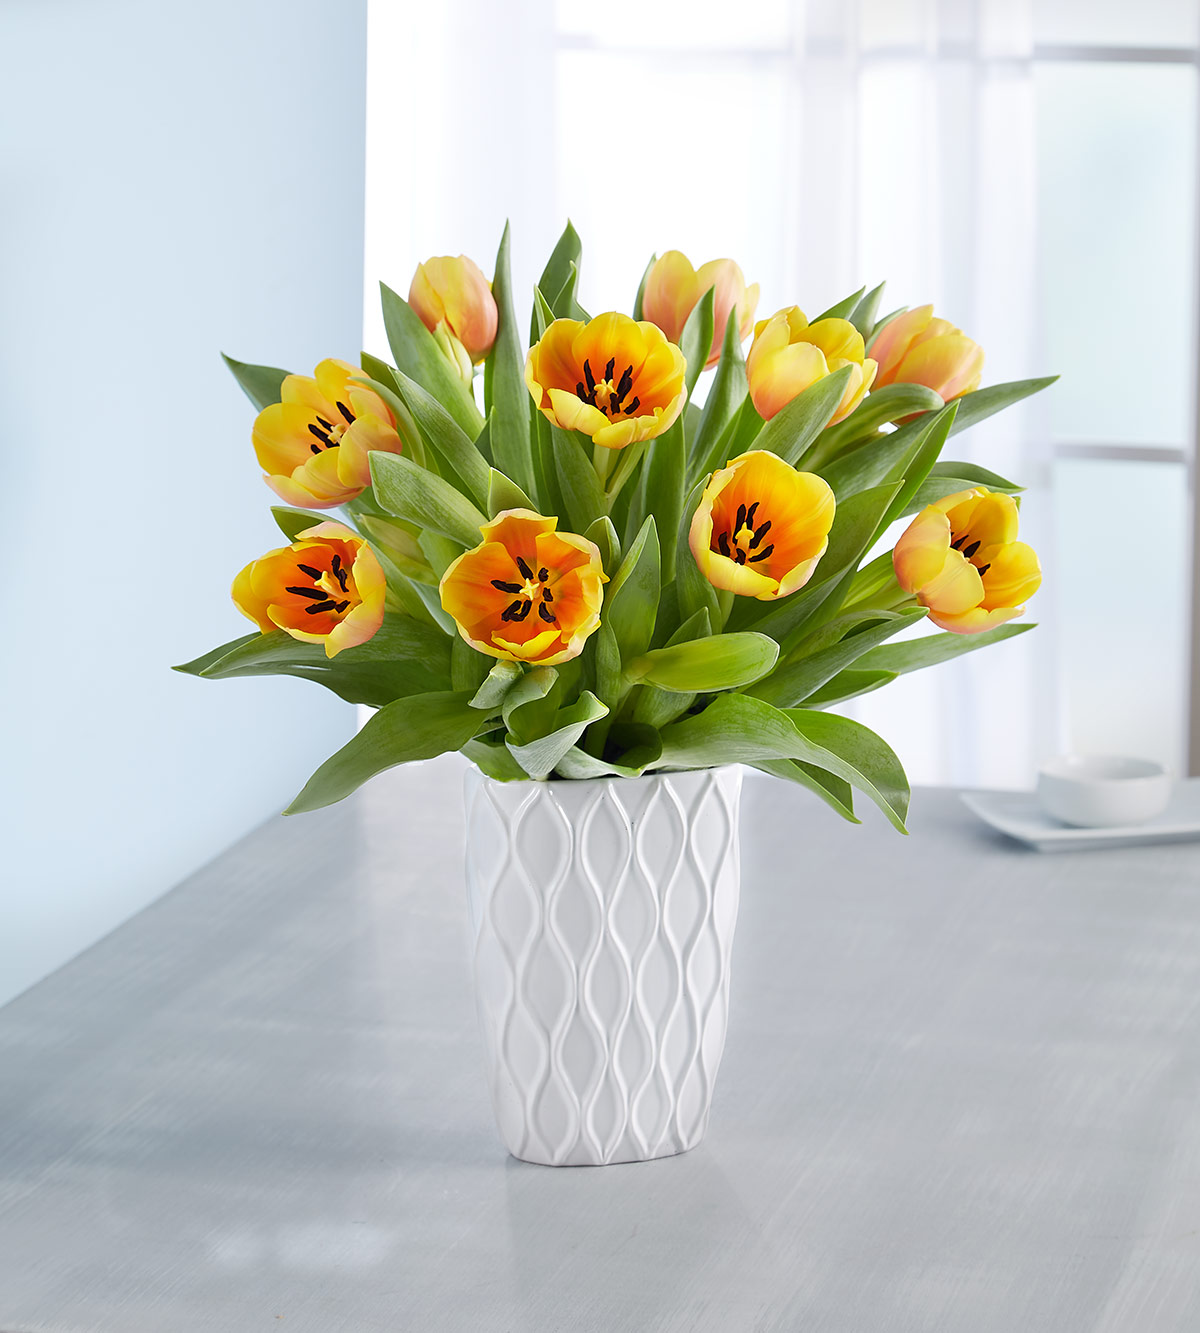 French Tulips by Real Simple